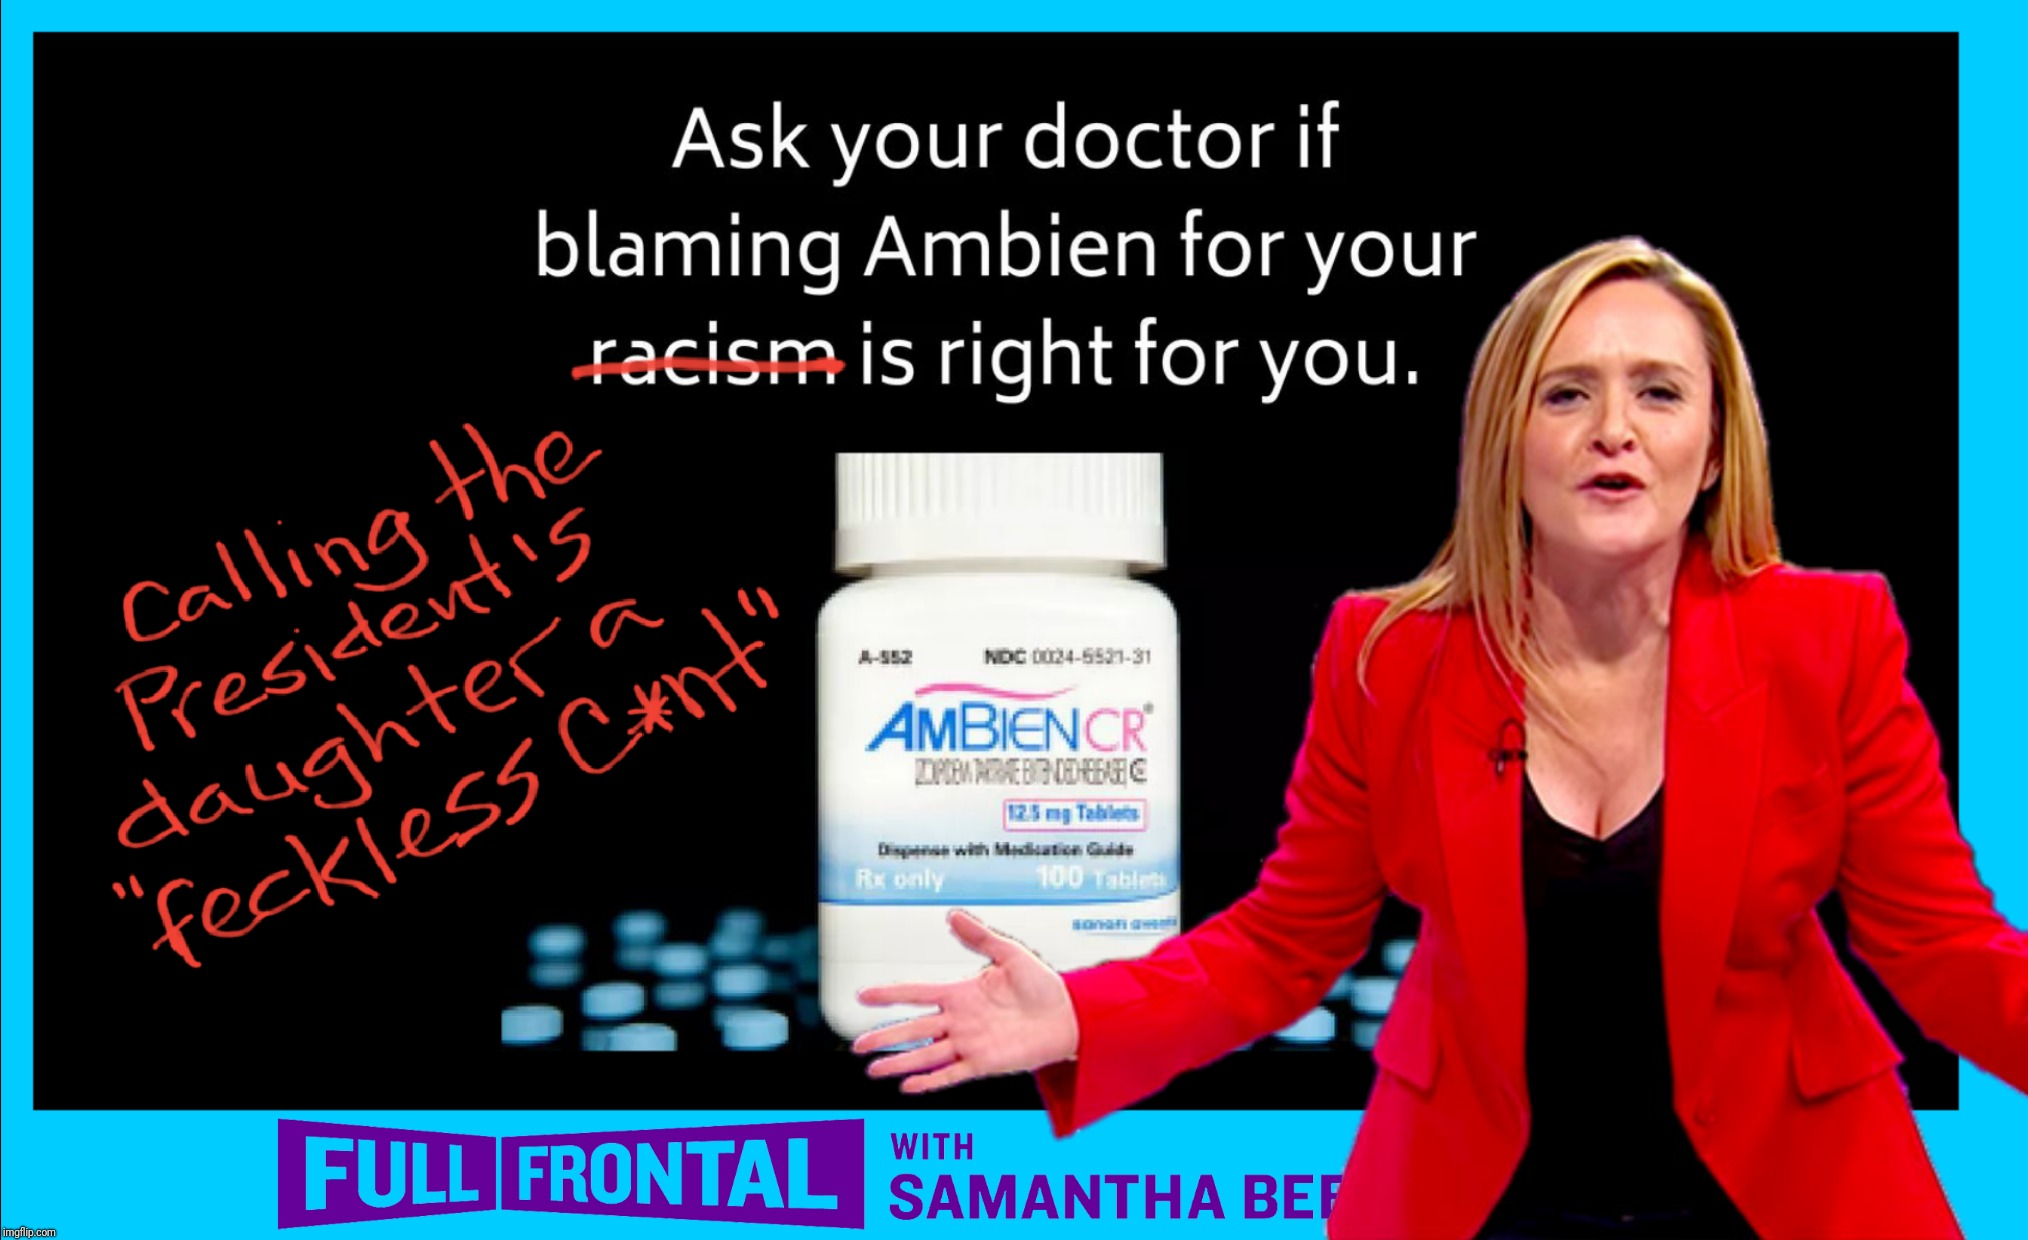 Samantha be like... | ASK YOUR DOCTOR IF AMBIEN IS RIGHT FOR YOUR CALLING THE 1ST DAUGHTER A FECKLESS C-WORD | image tagged in memes,samantha bee,ivanka trump,political meme,ambien,liberal hypocrisy | made w/ Imgflip meme maker